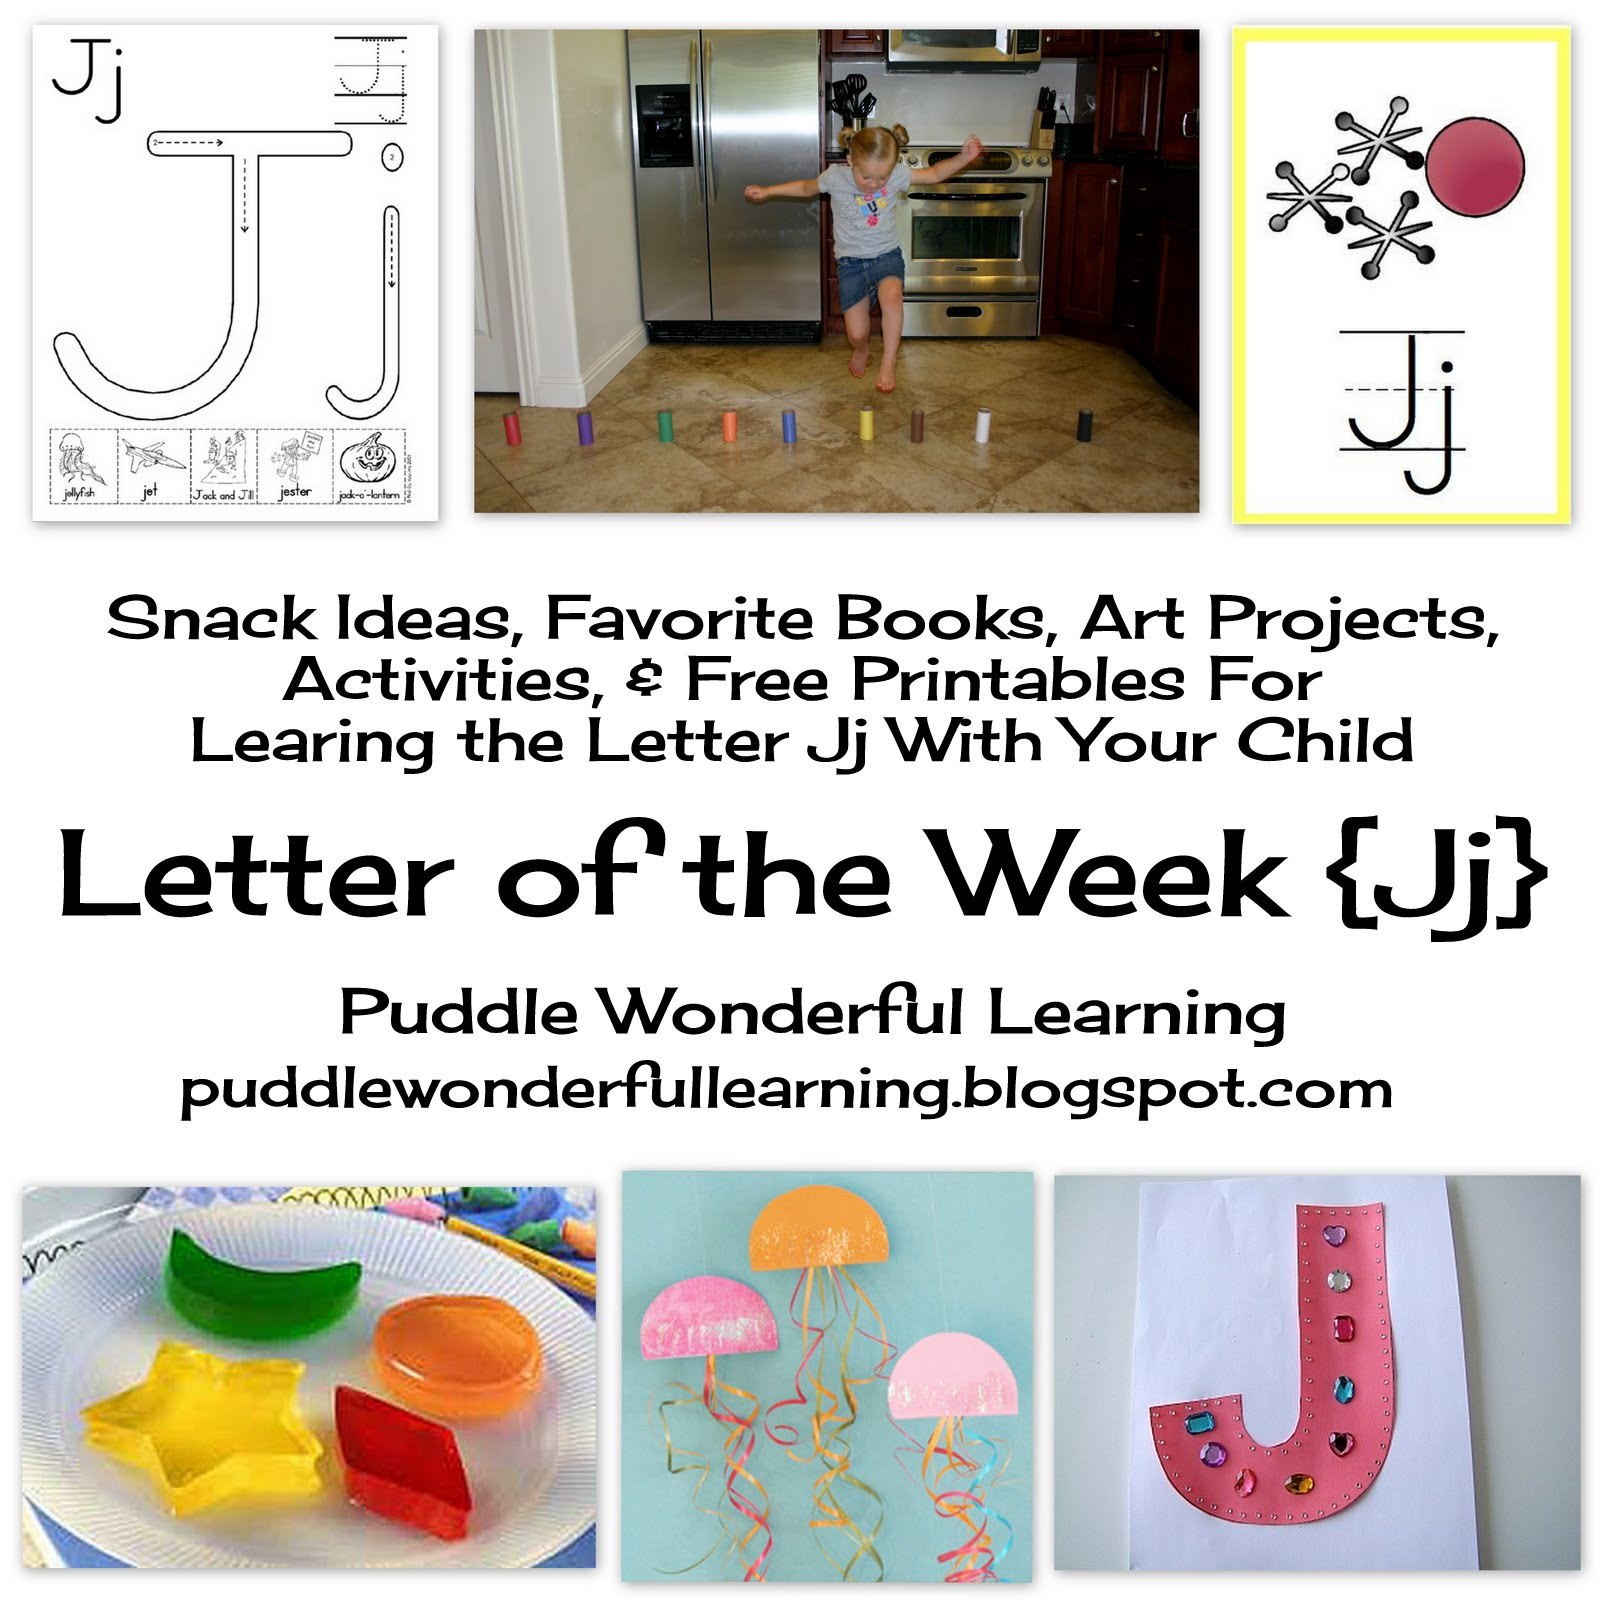 Puddle Wonderful Learning Preschool Activities Letter Of The Week Jj